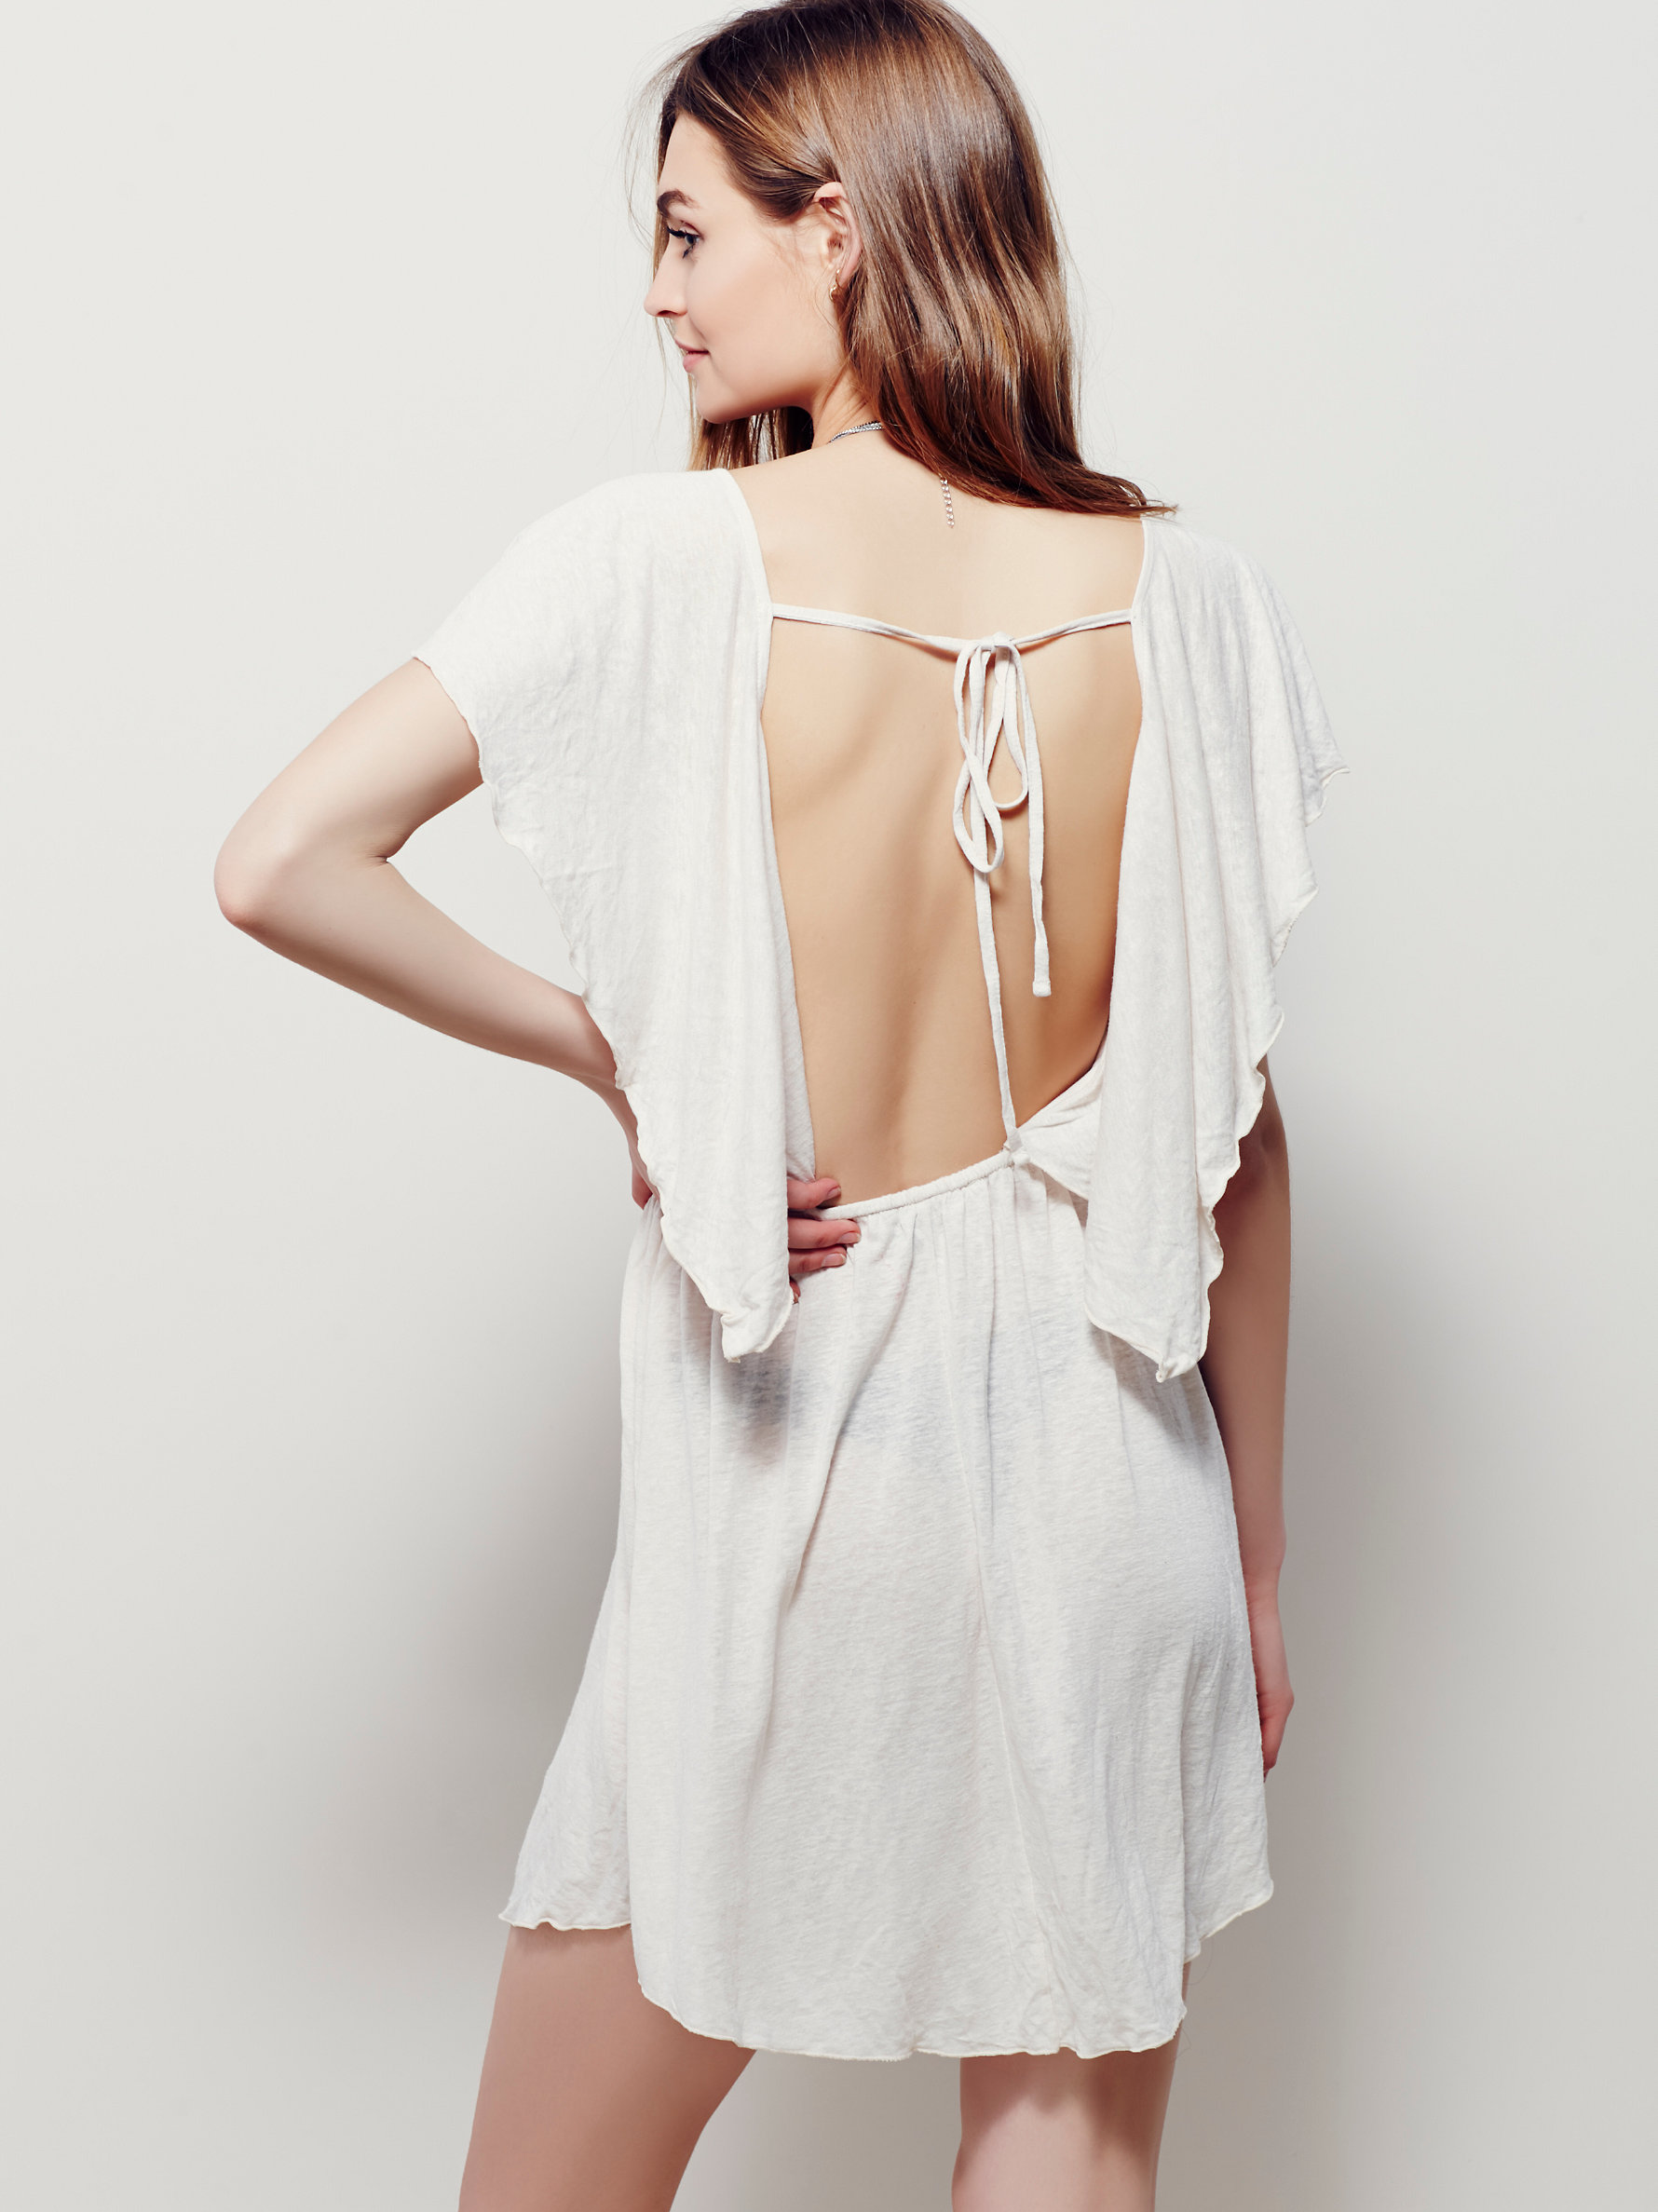 10 Perfect White Vacation Dresses - Free People Ana Swing Dress